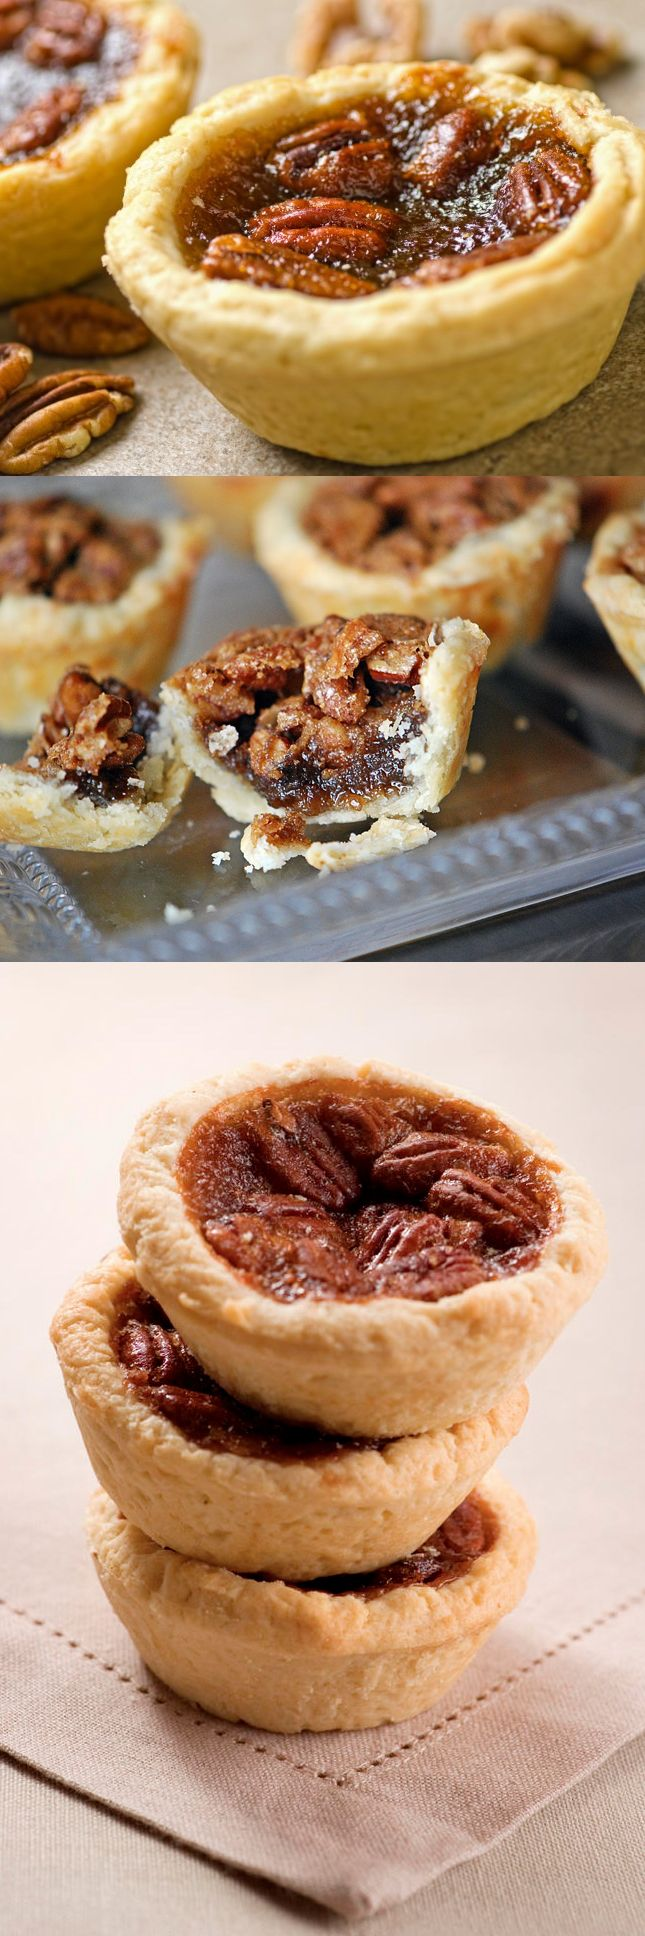 mini pecan pie tart recipe easy crust baking dessert thanksgiving winter christmas holidays dessert on the go snack easy grandmas recipe better baking bible blog